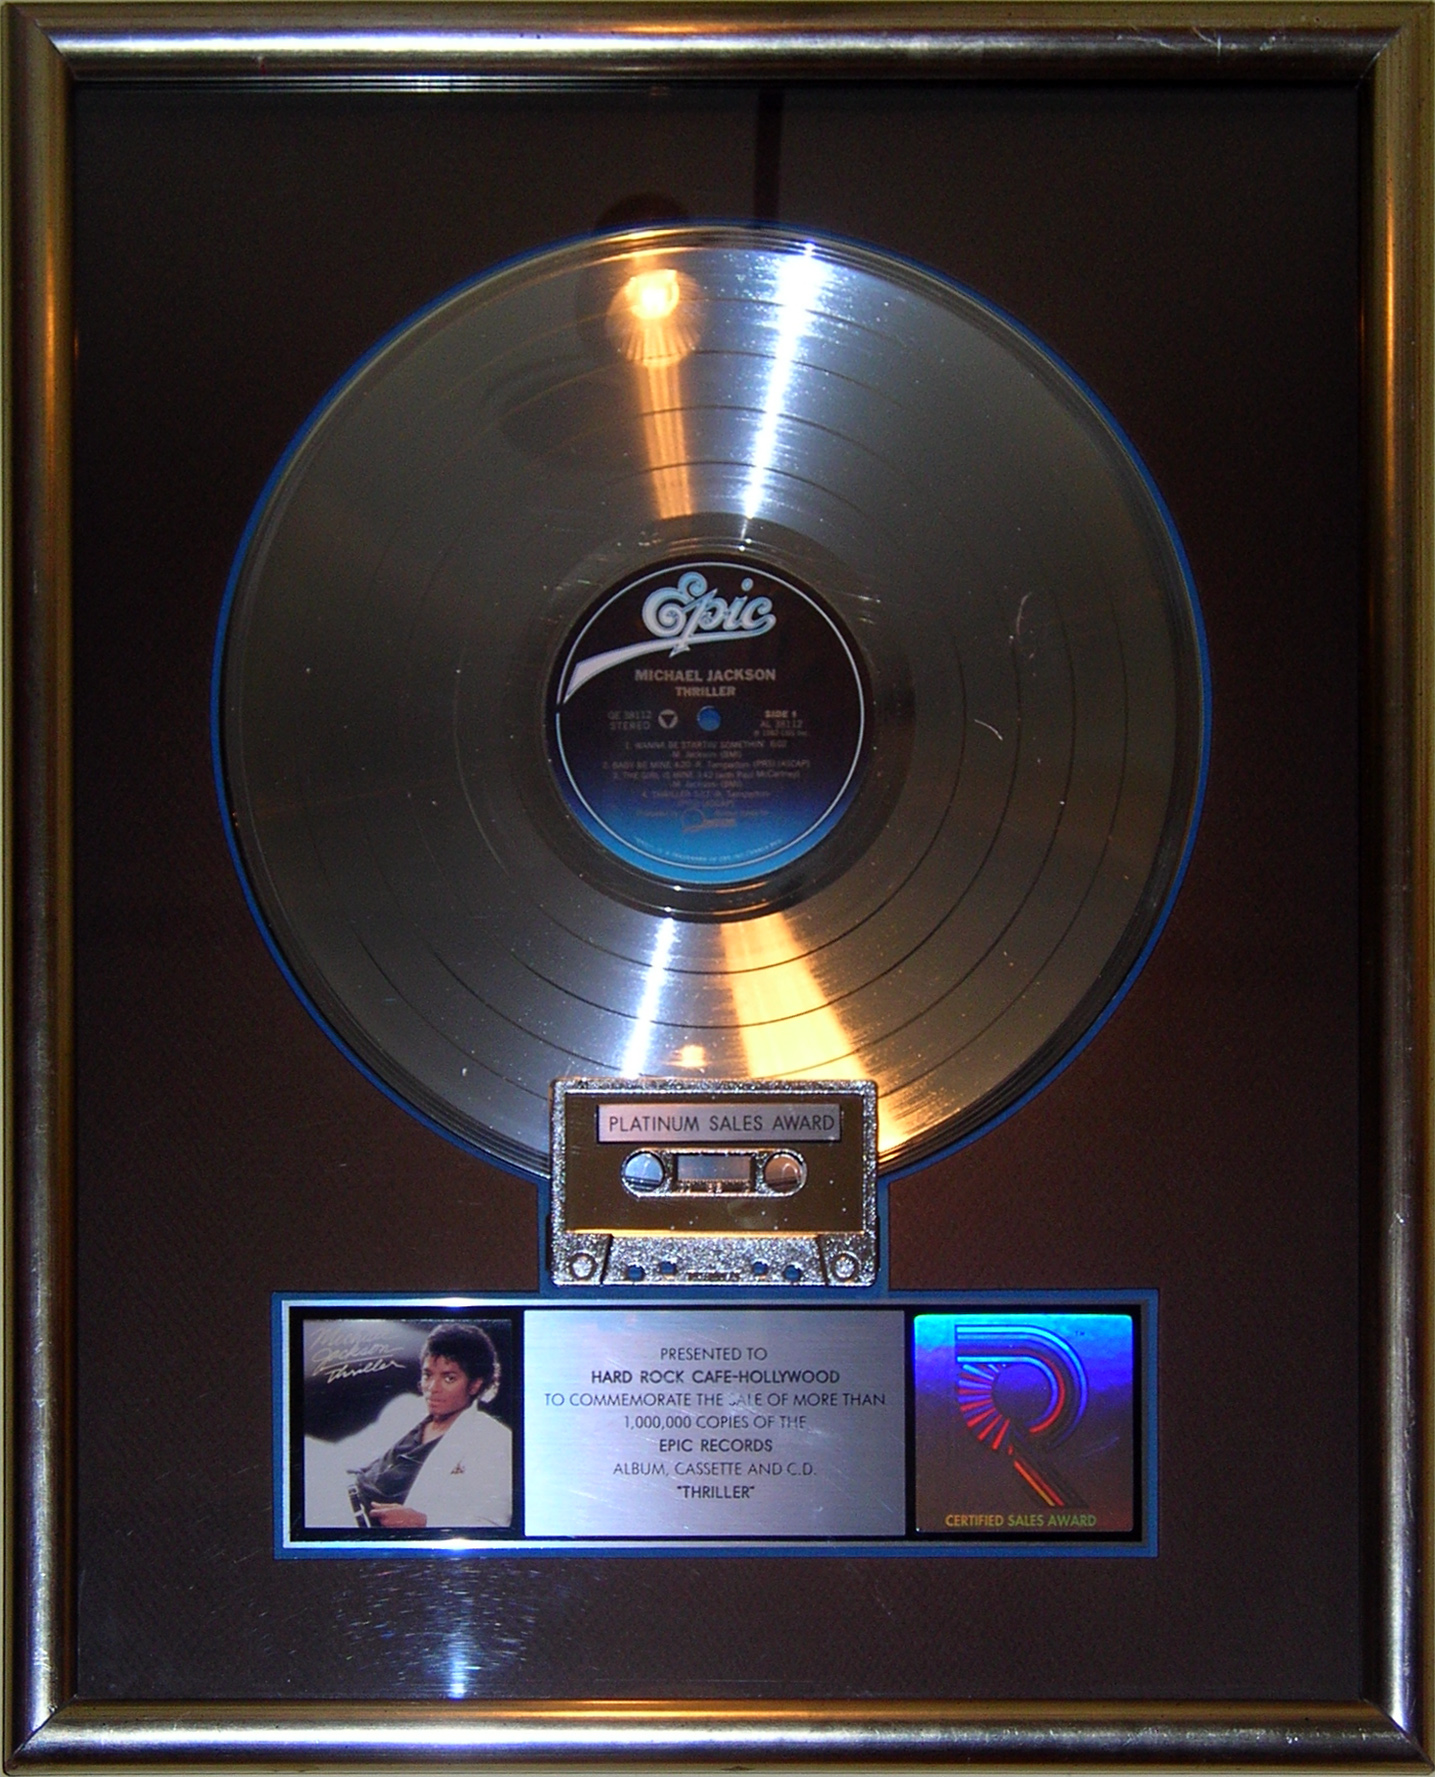 List of best-selling albums - Wikipedia